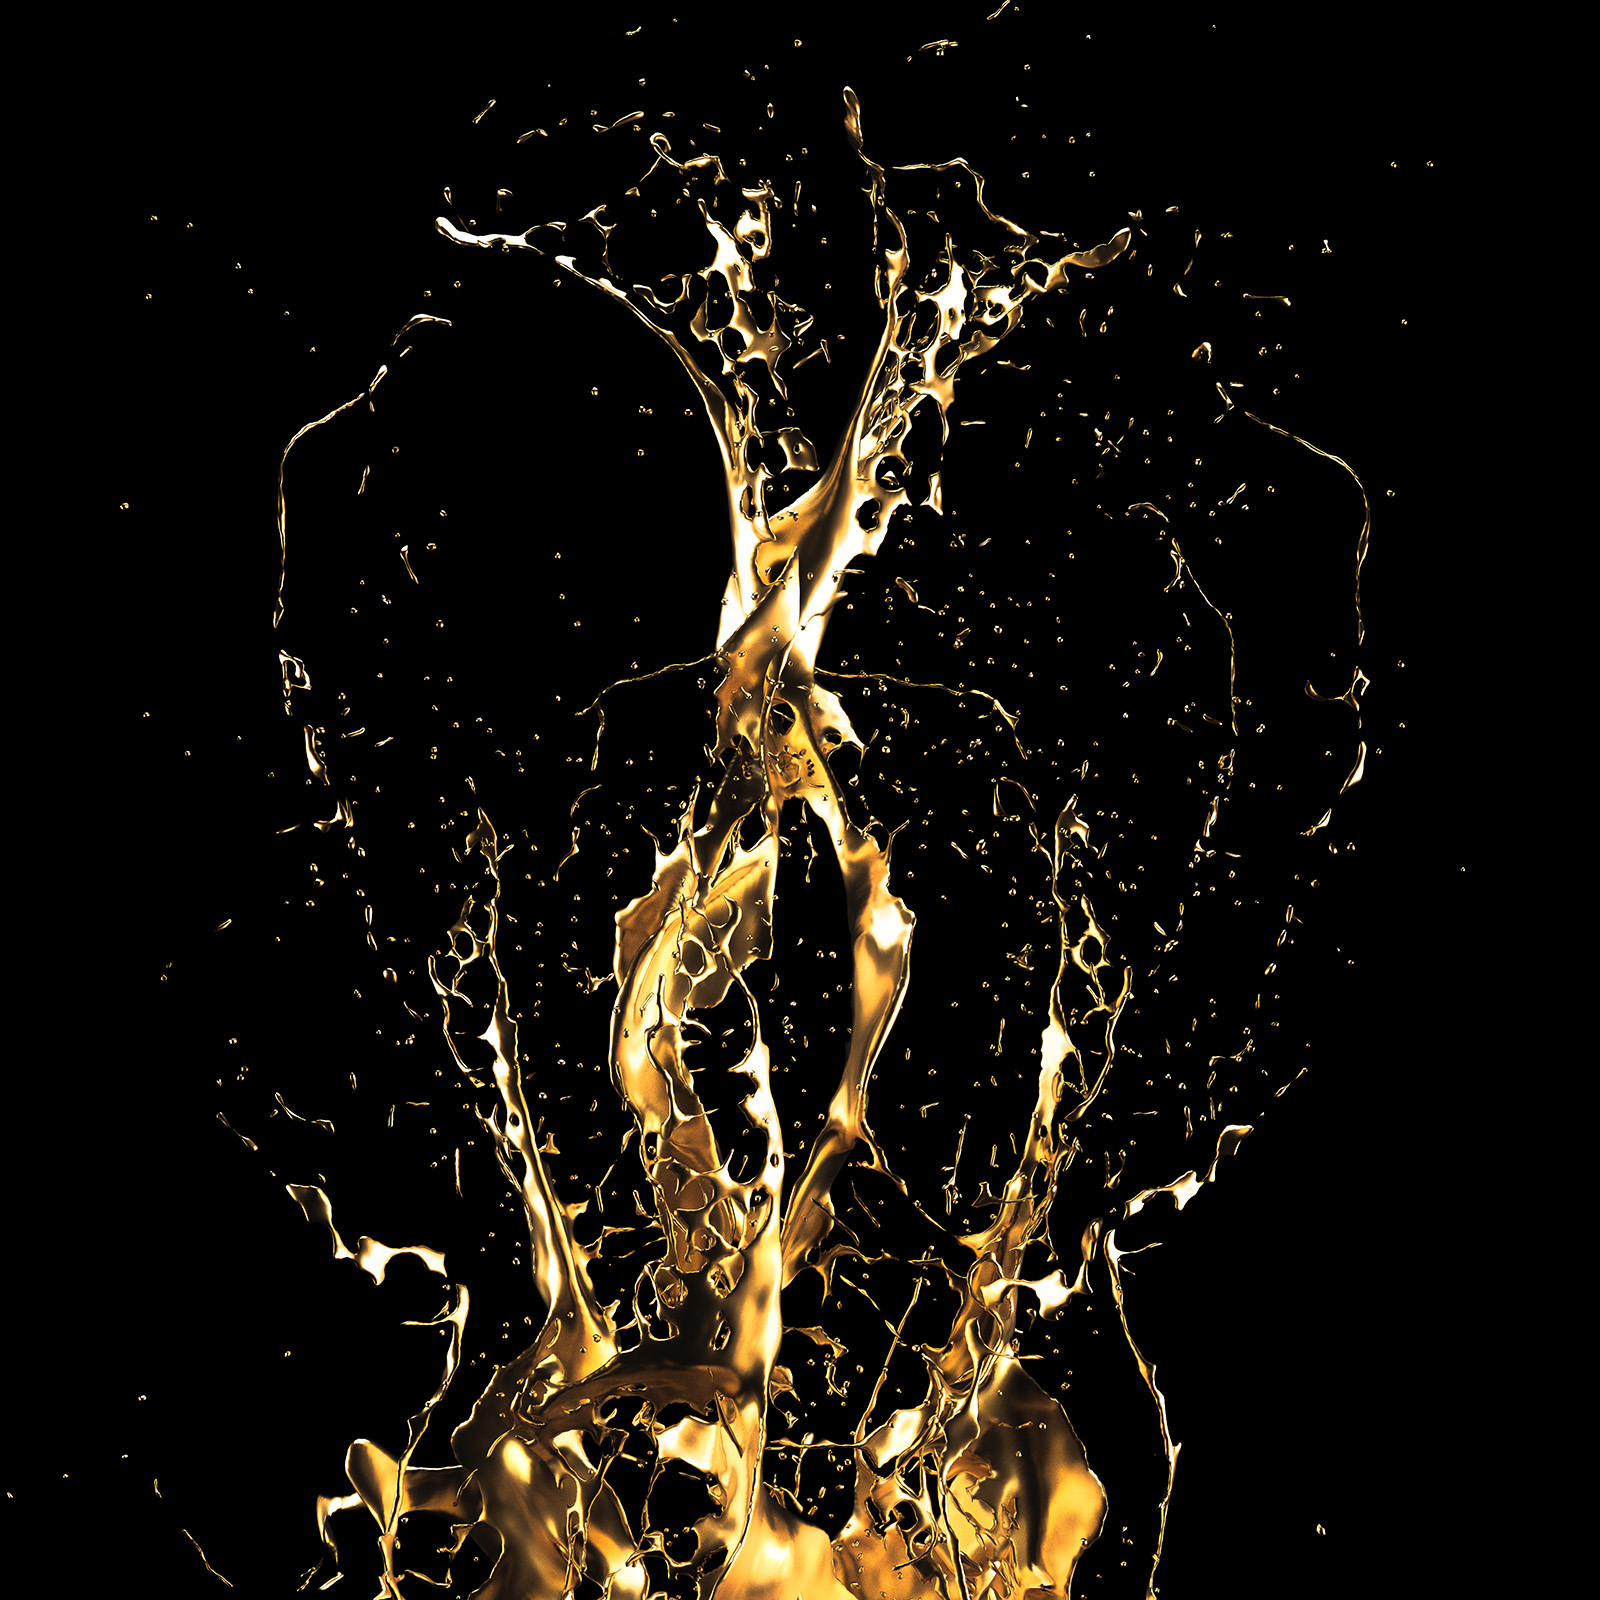 Golden Liquid